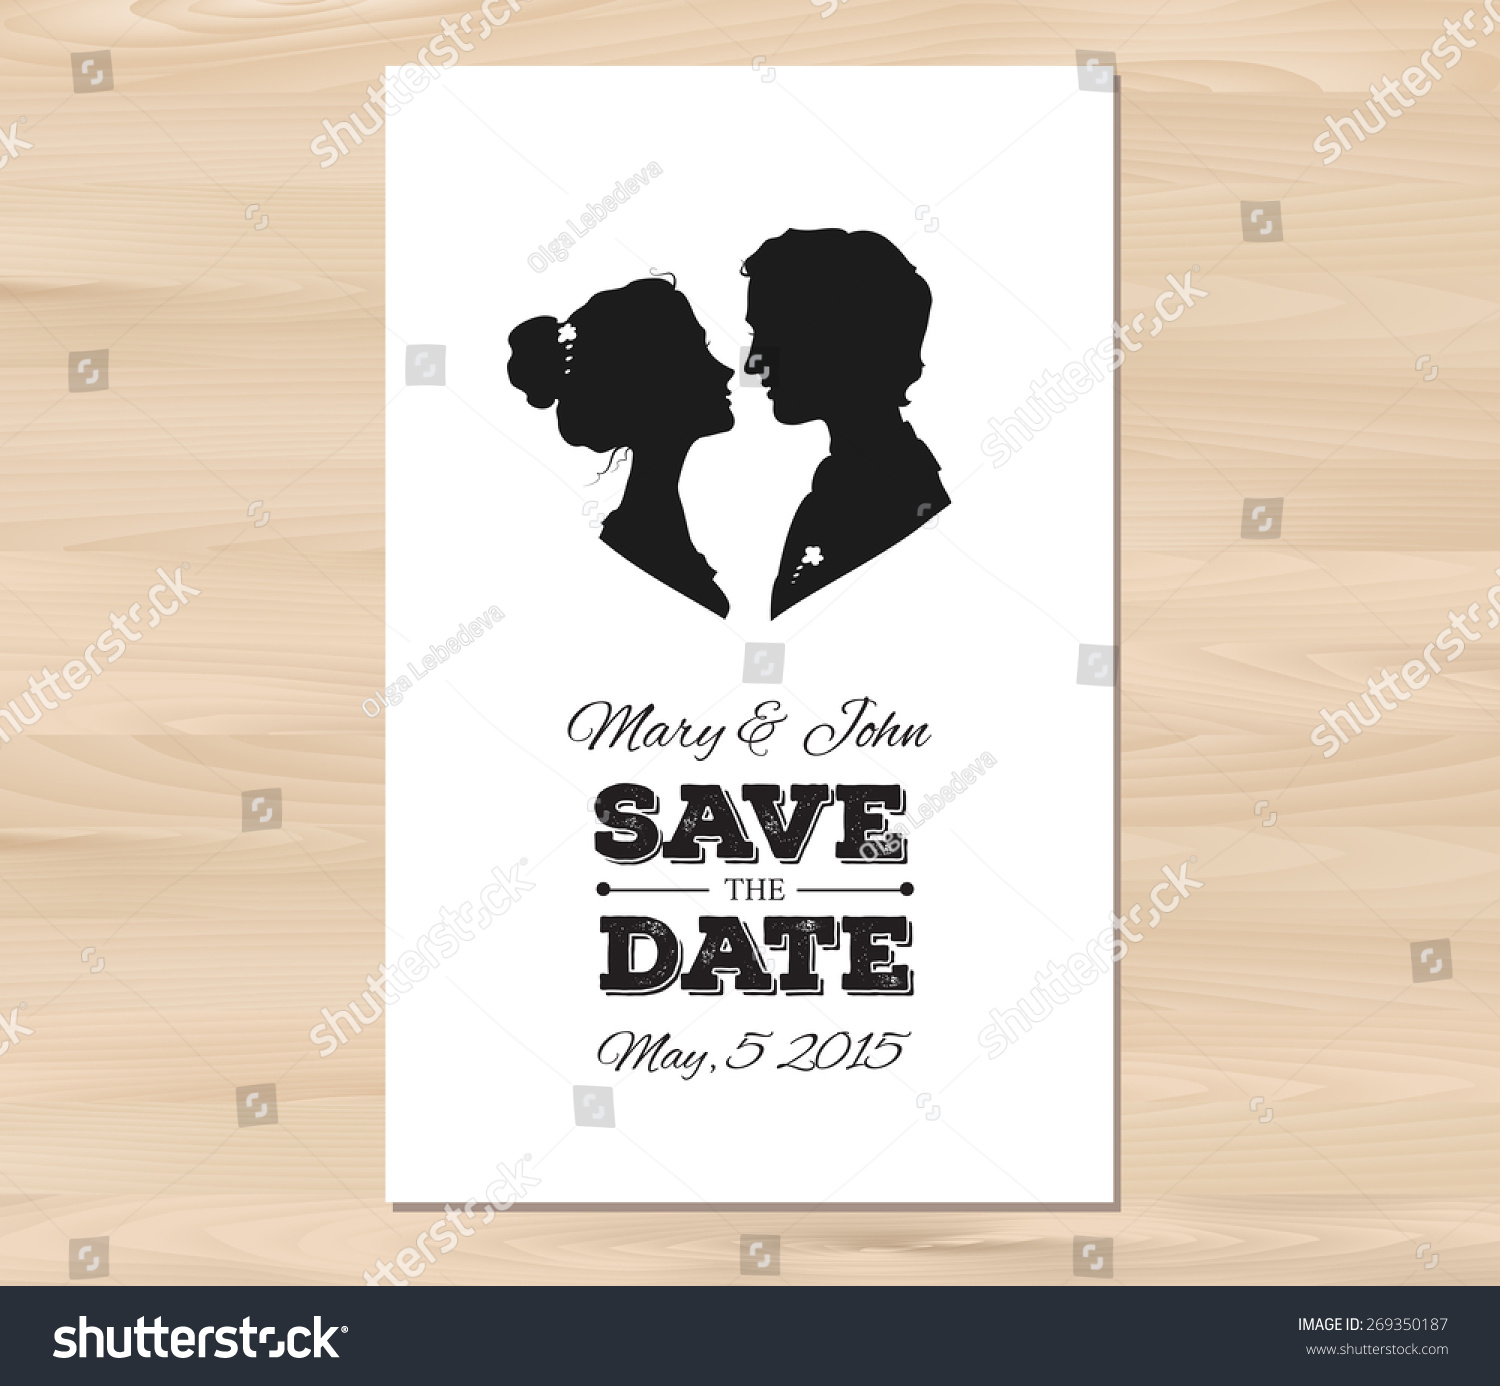 Date Template modern diy save the date free printable – Free Printable Wedding Save the Date Templates